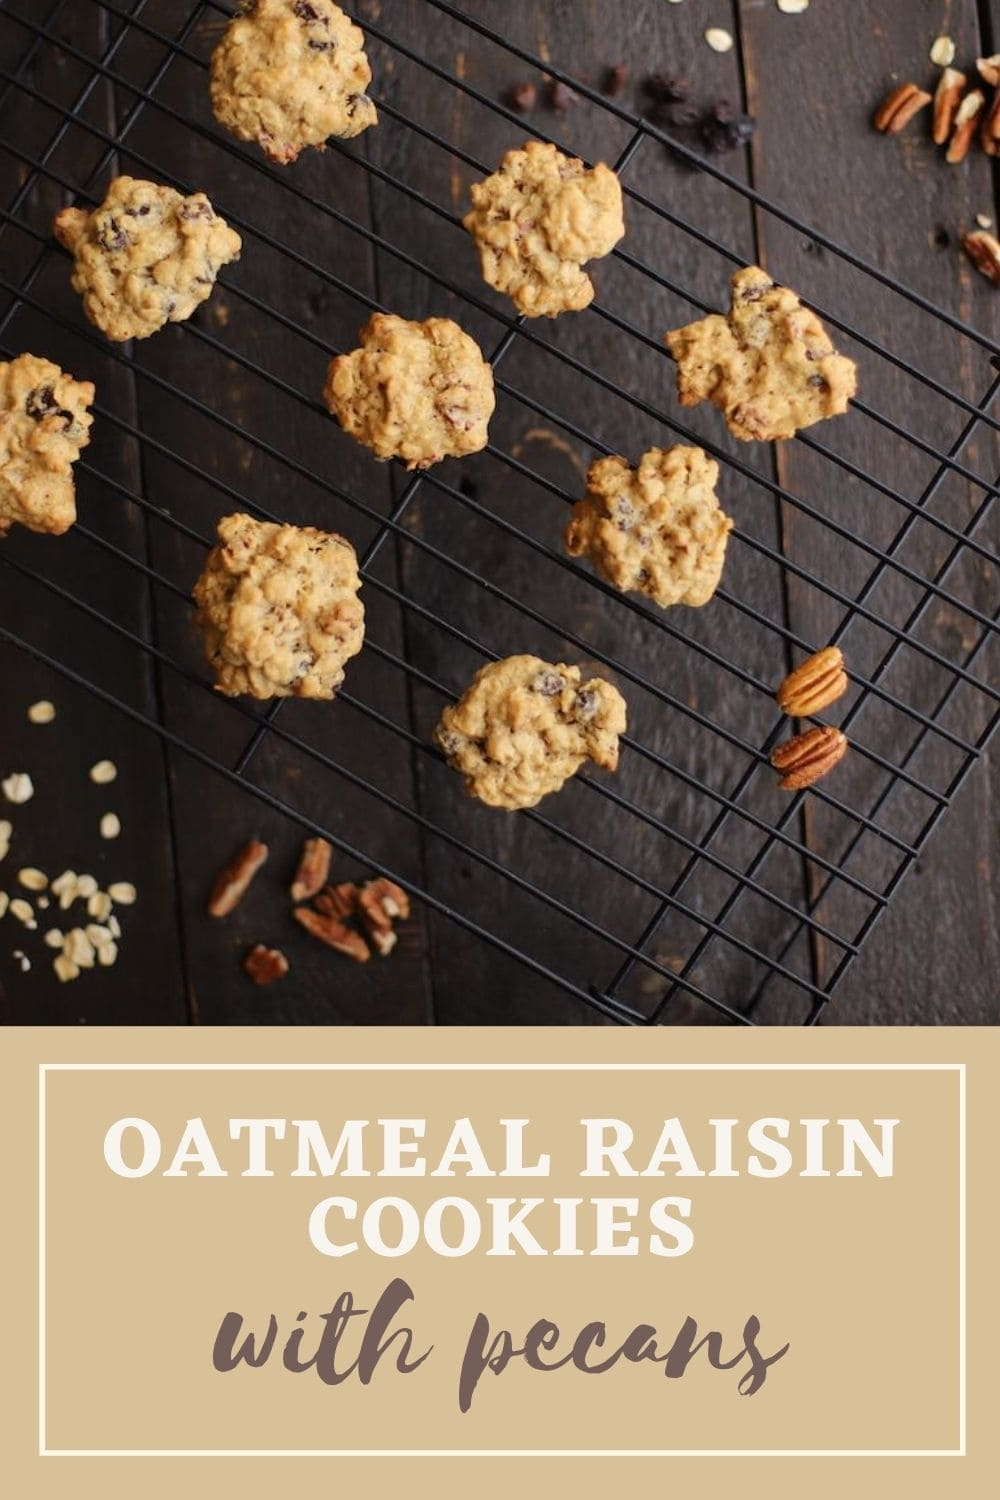 oatmeal raisin cookies on a wire rack